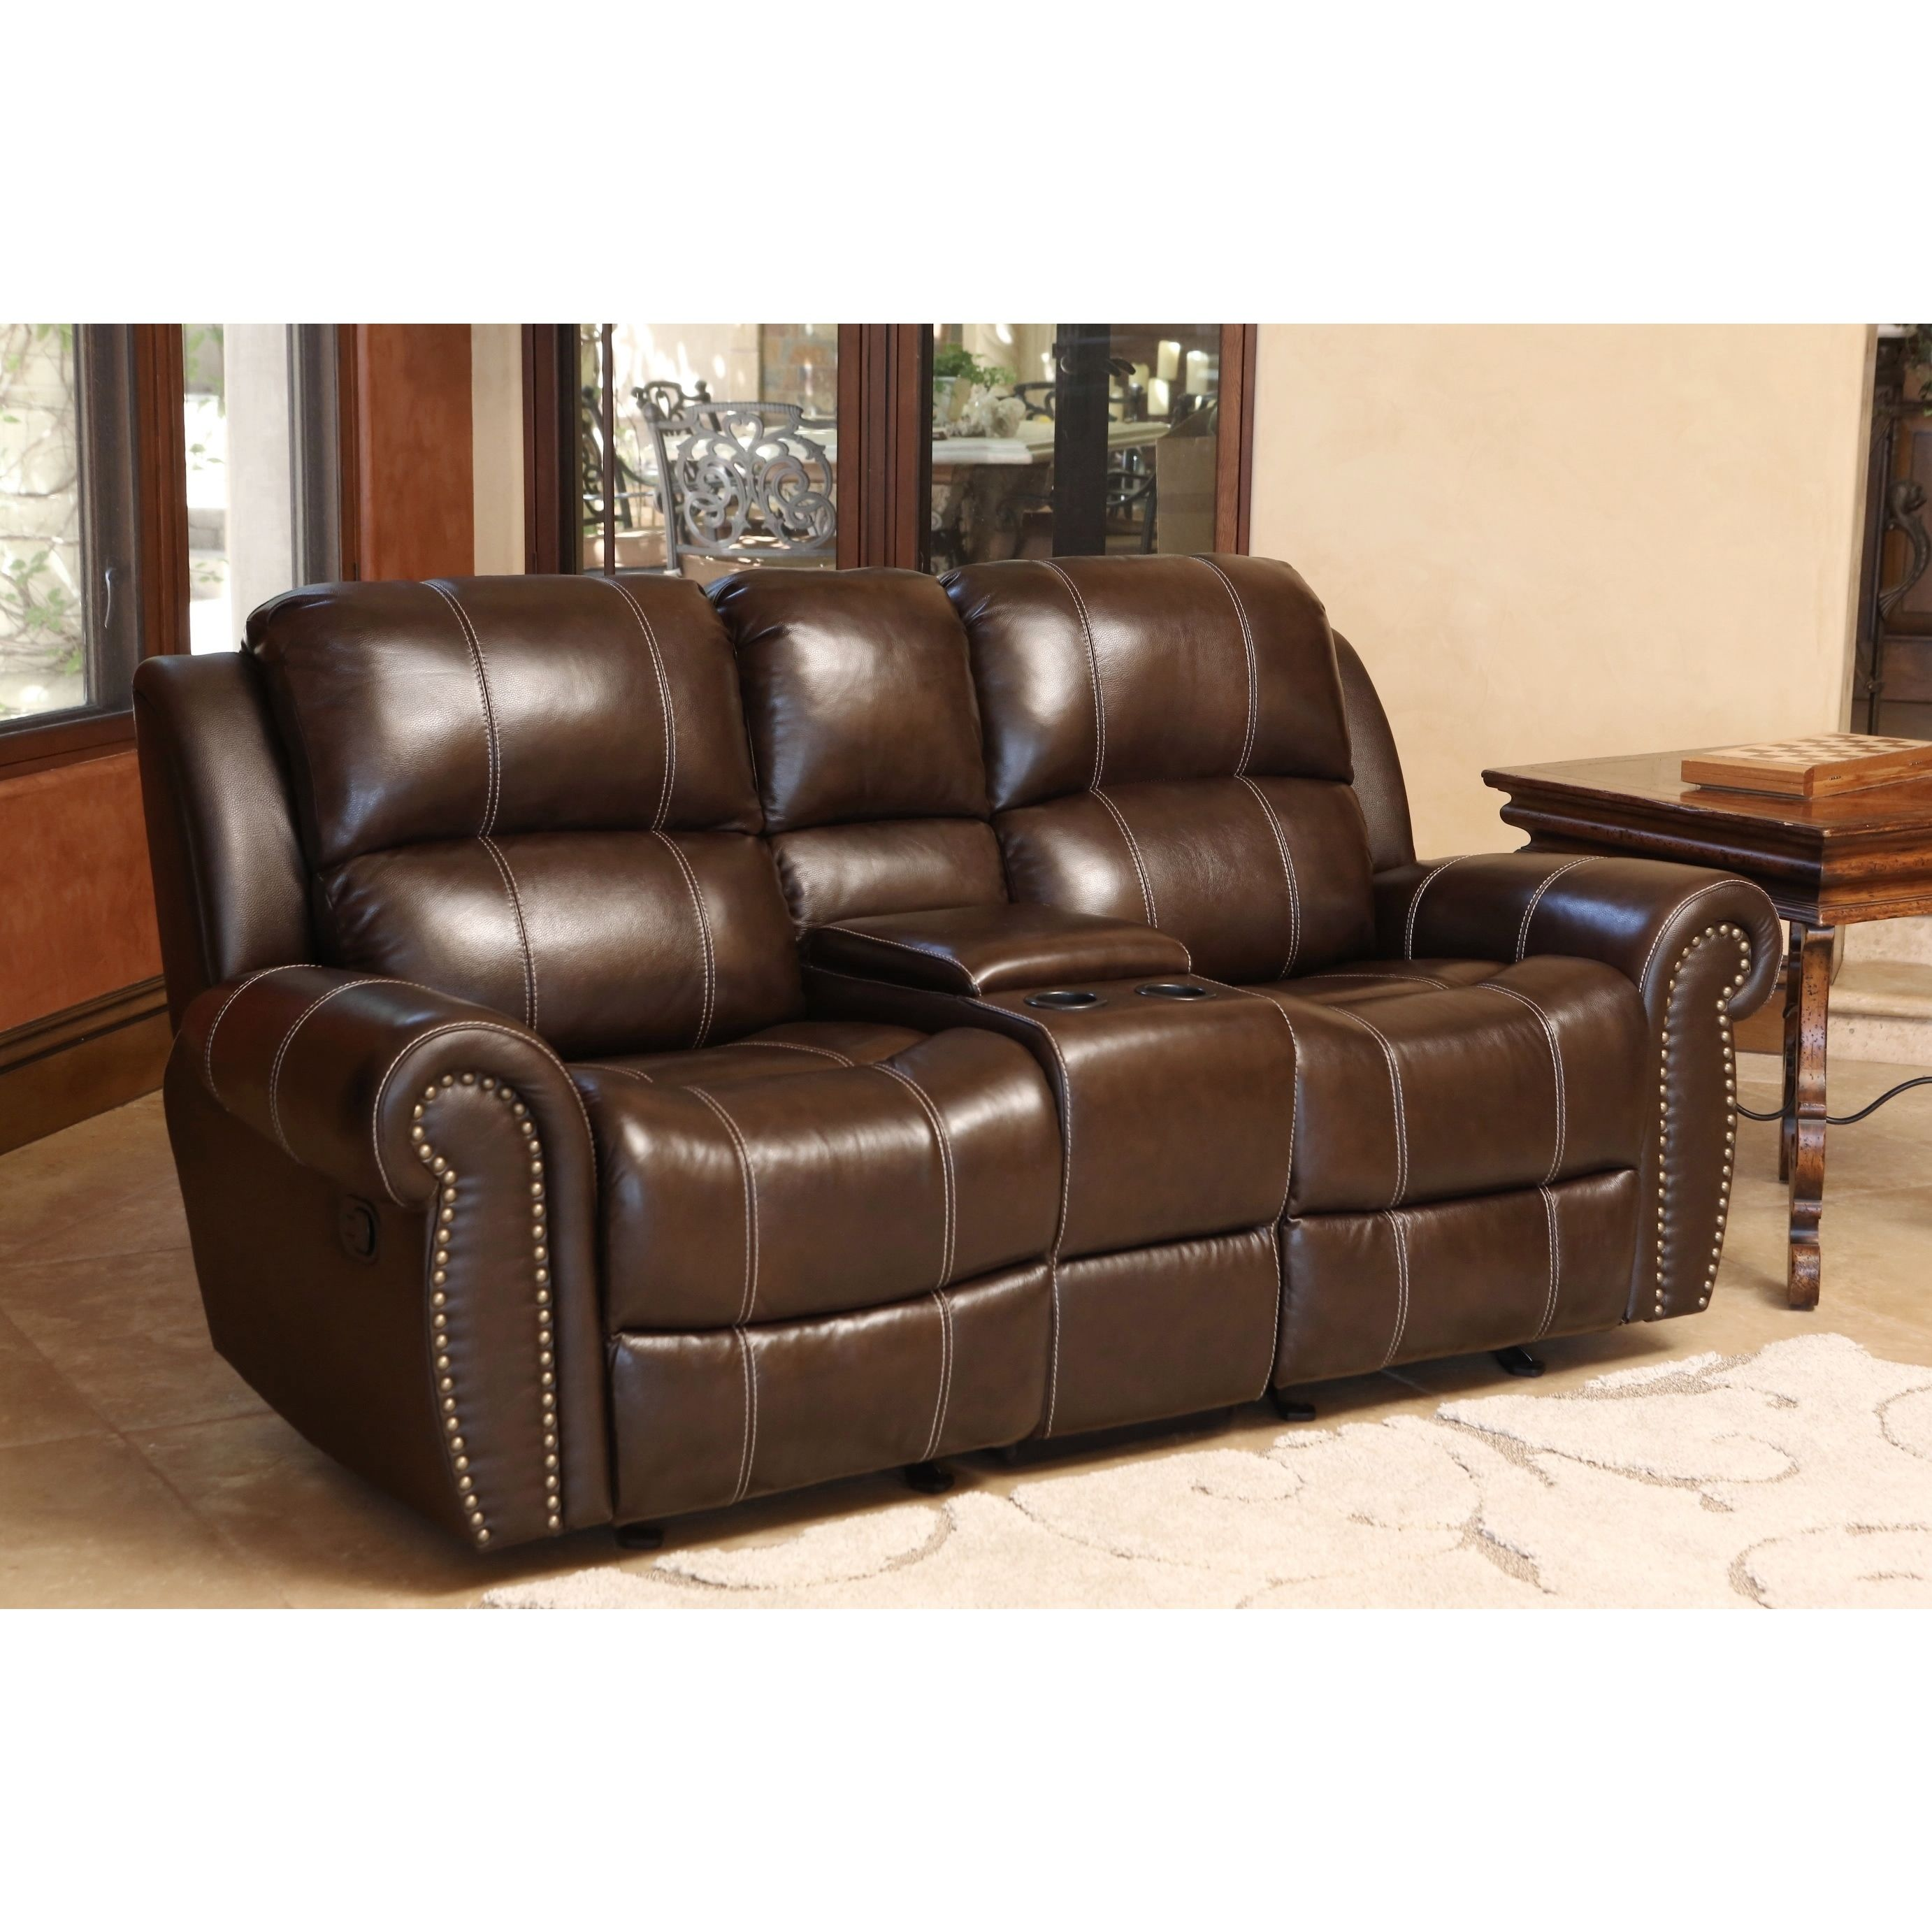 Chandler Top Grain Leather Power Sofa with USB Port